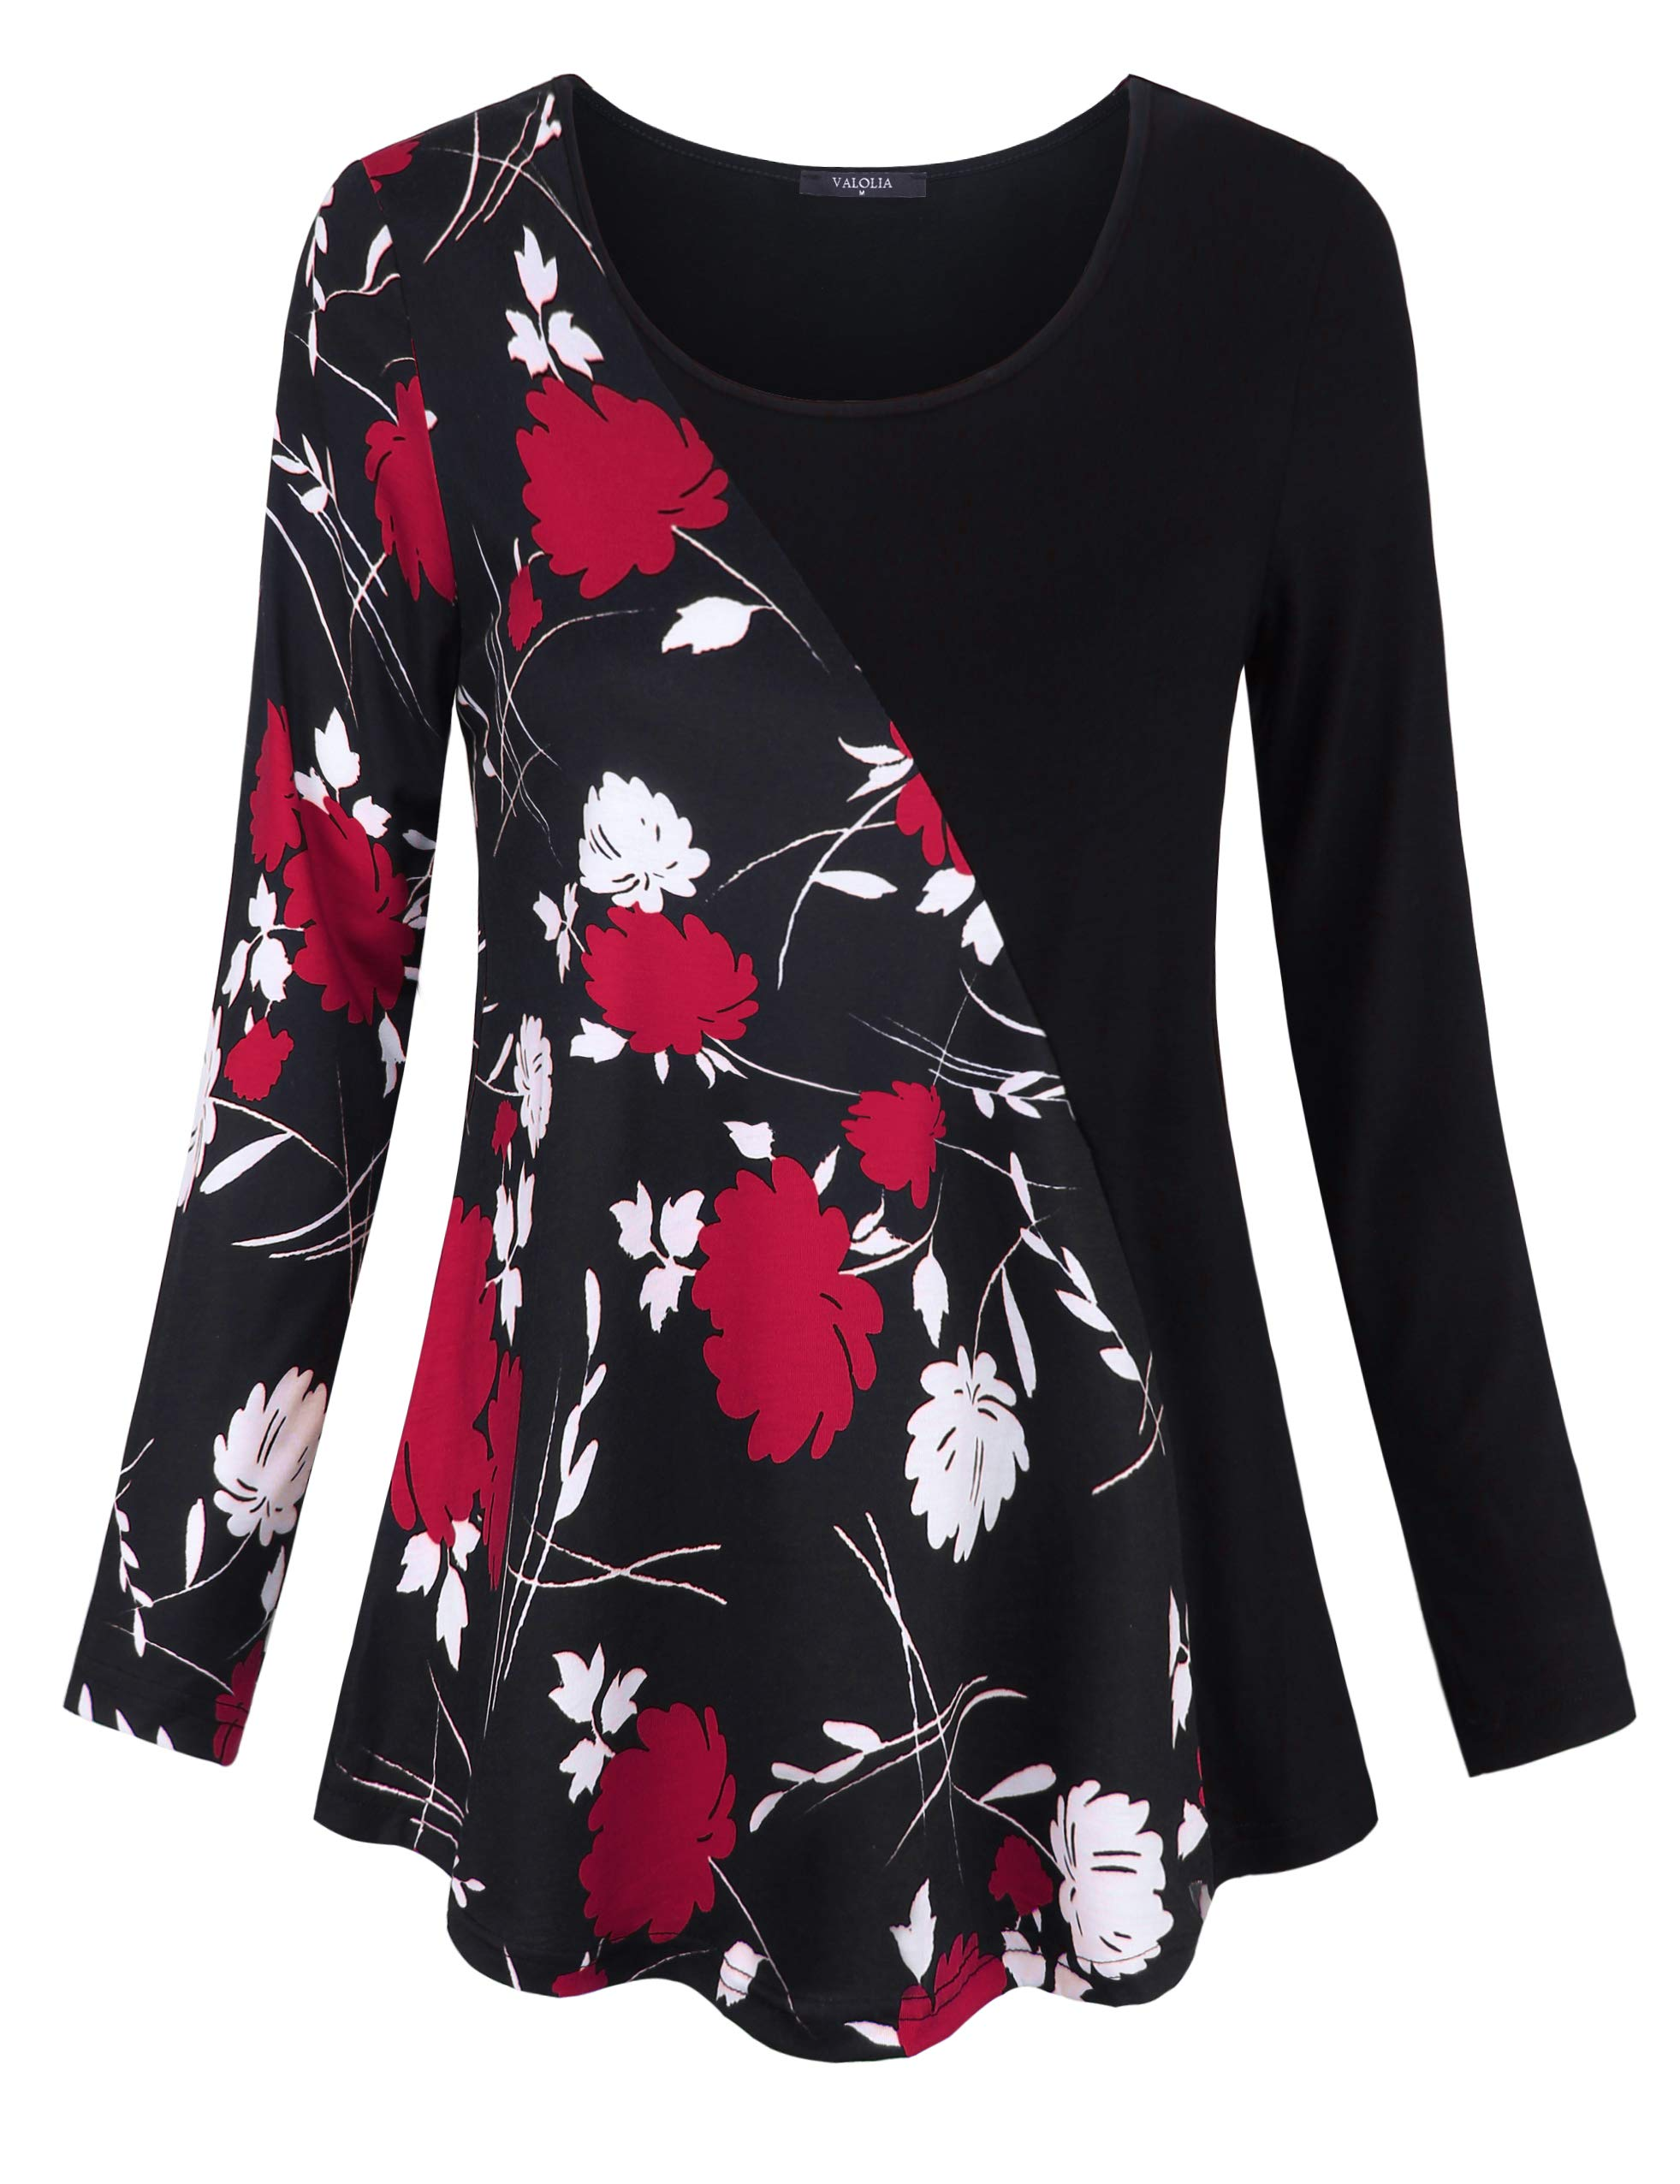 VALOLIA Tunic Tops for Women, Casual O-Neck Long Sleeve Round Bottom Flowy Knit Tee Shirt Blouse Black Red Flower S